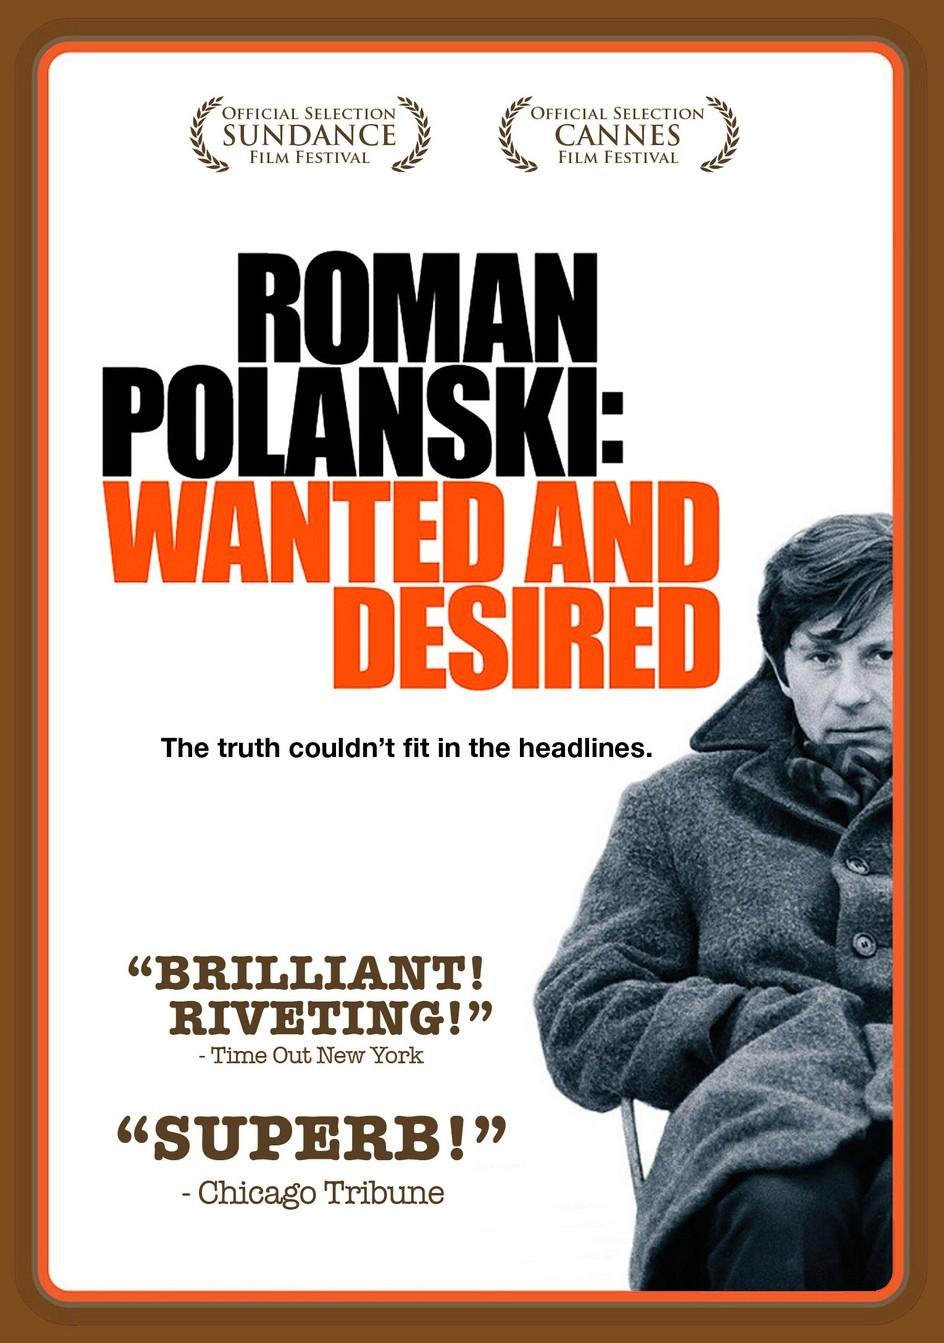 Documentales - Página 5 Roman_Polanski__Wanted_And_Desired_(2008)